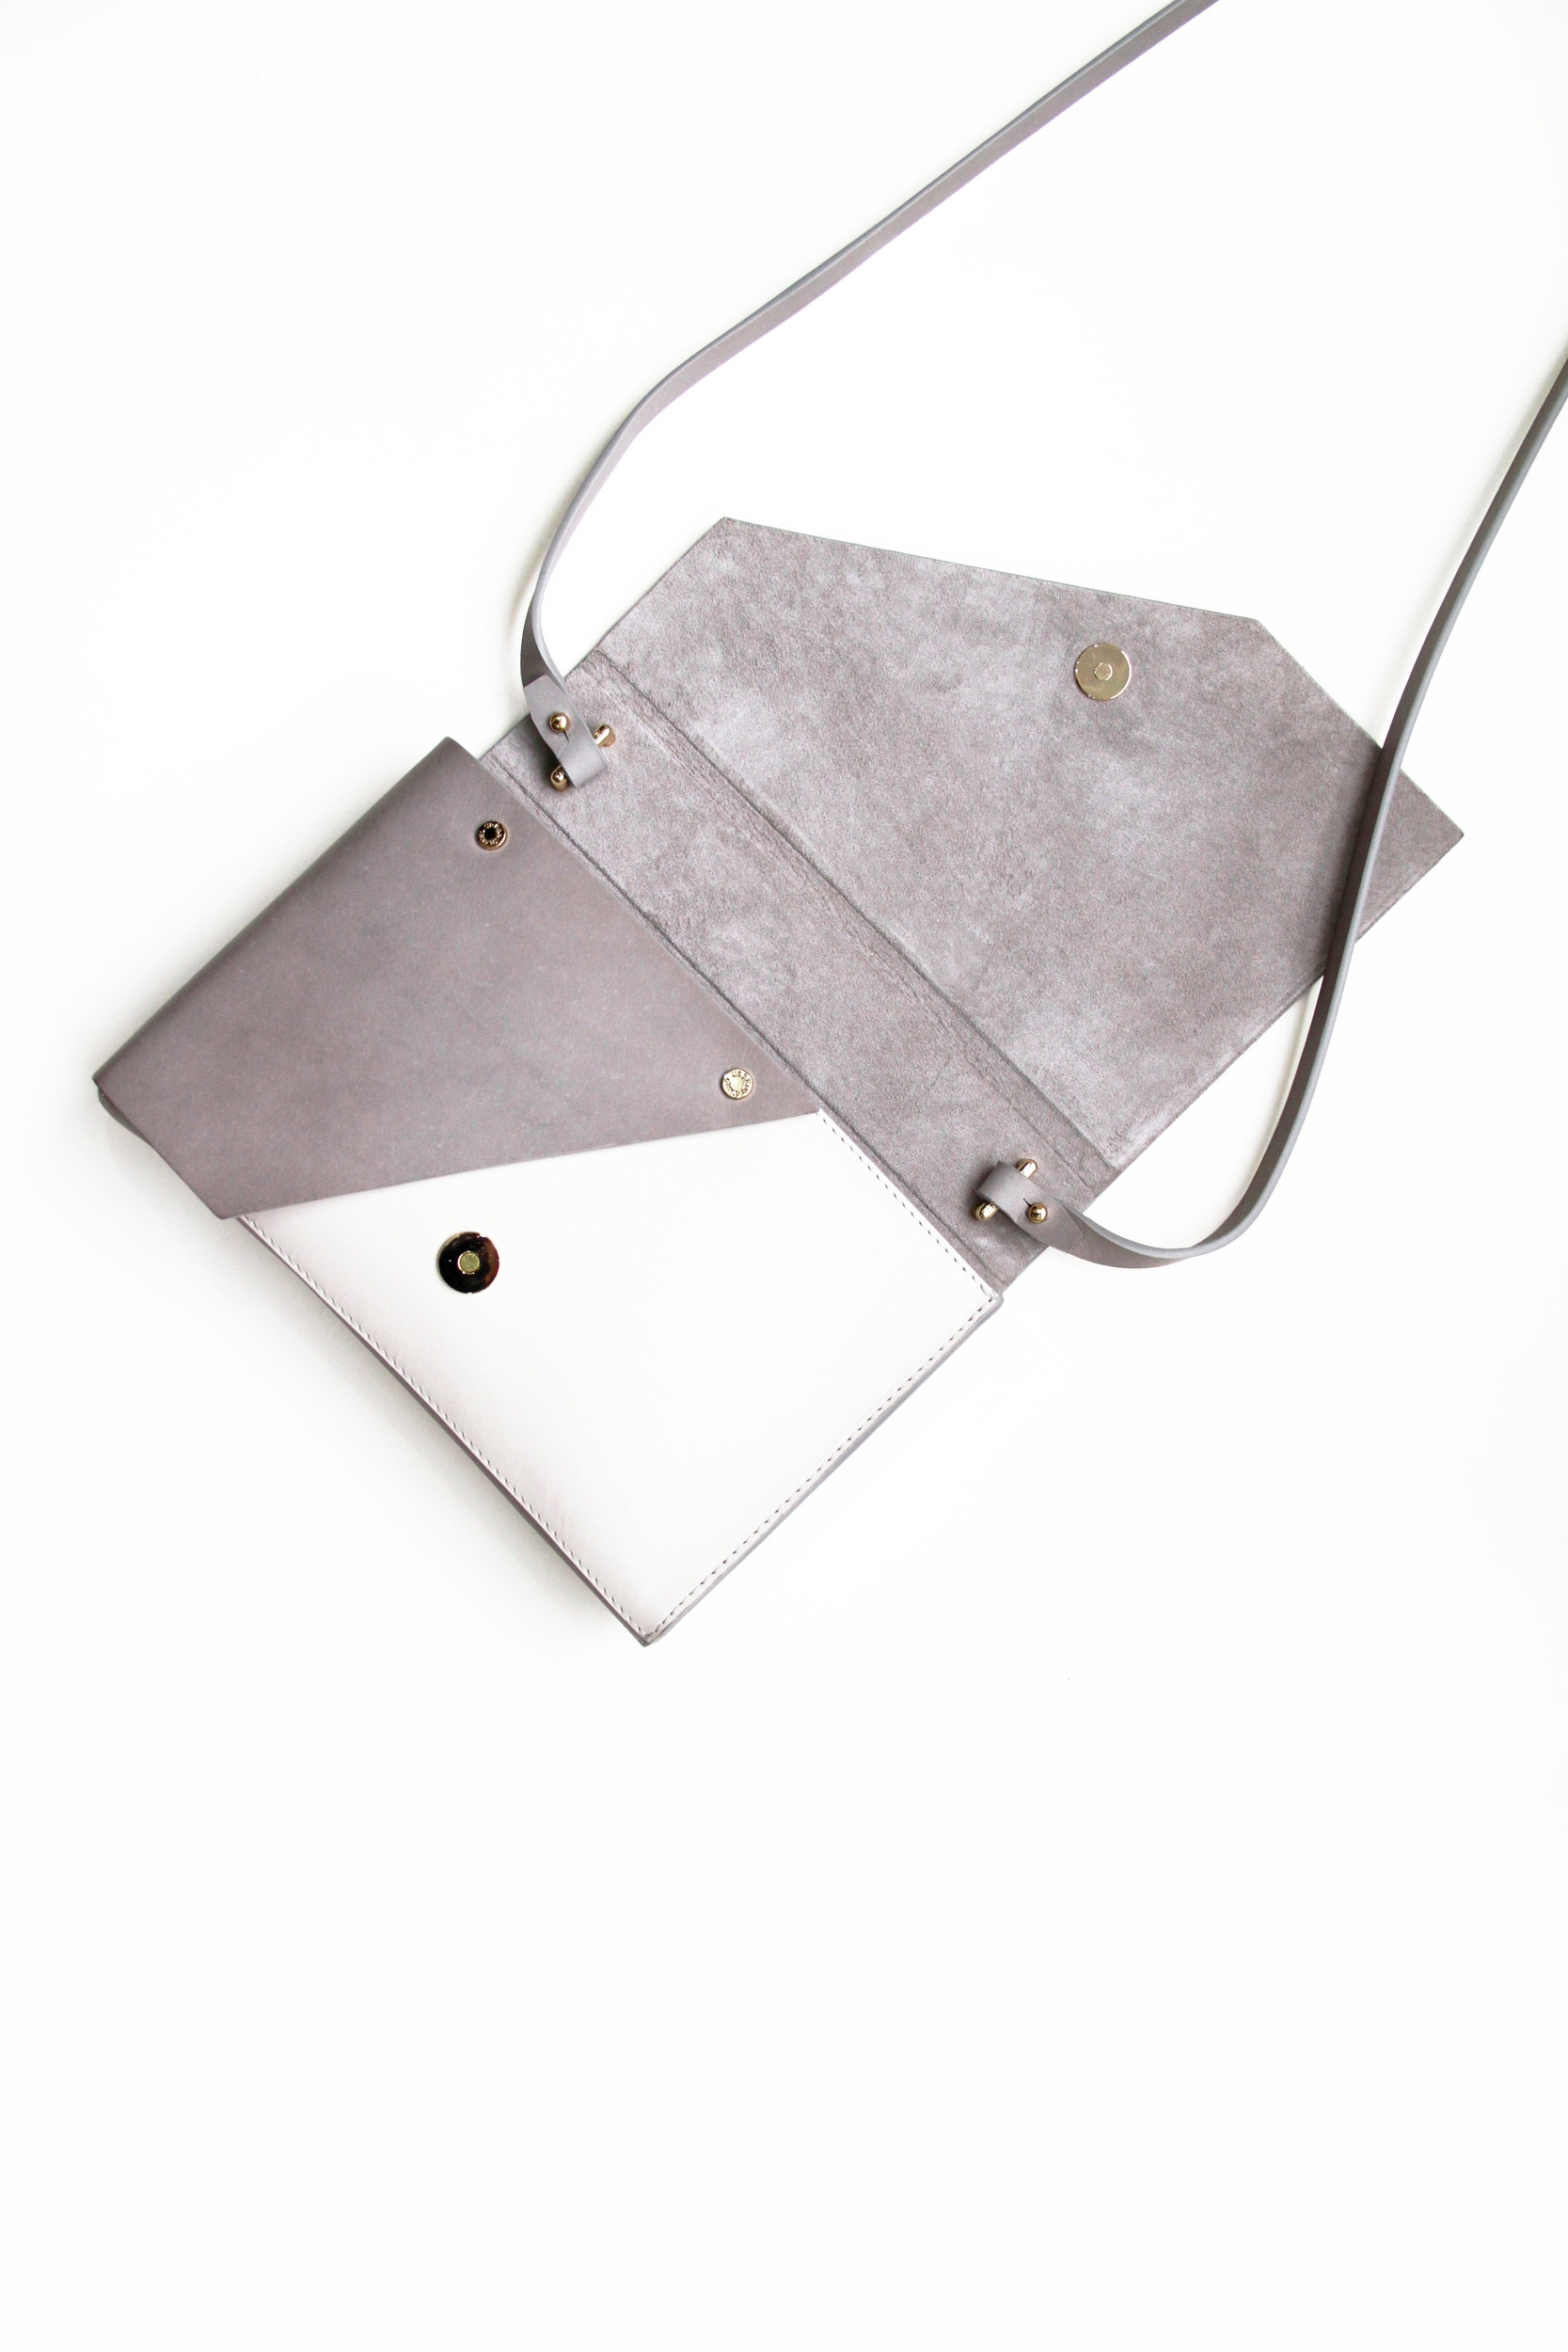 Evo Leather Clutch grey open 2 -Urban Travel x Isabel Wong V2.jpg